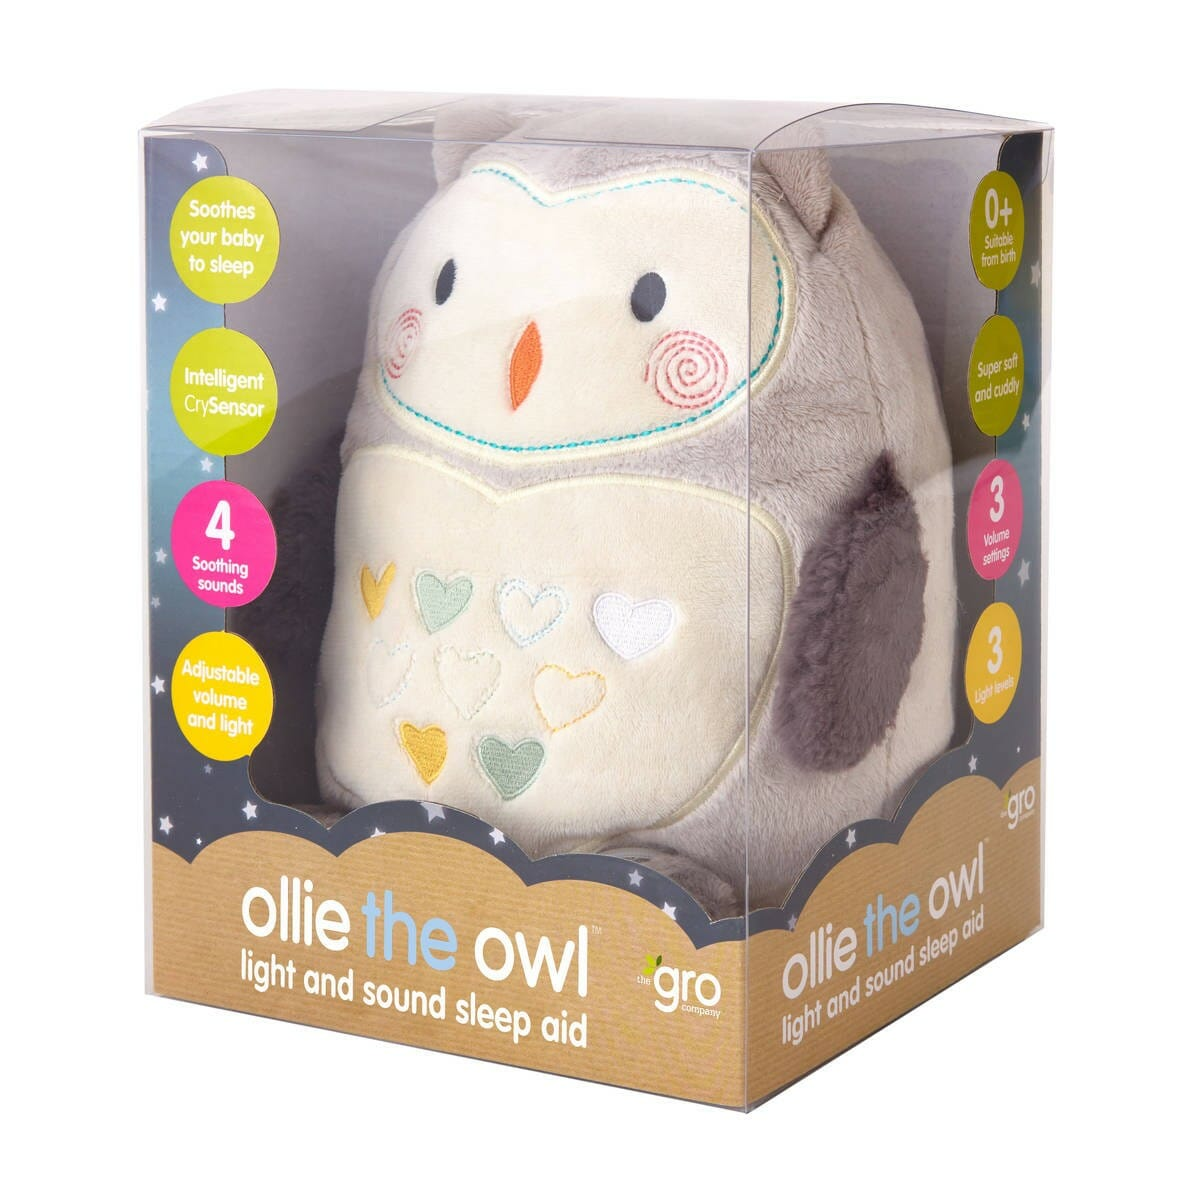 Gro Ollie the Owl Sound and Light Gro Friend Packaging